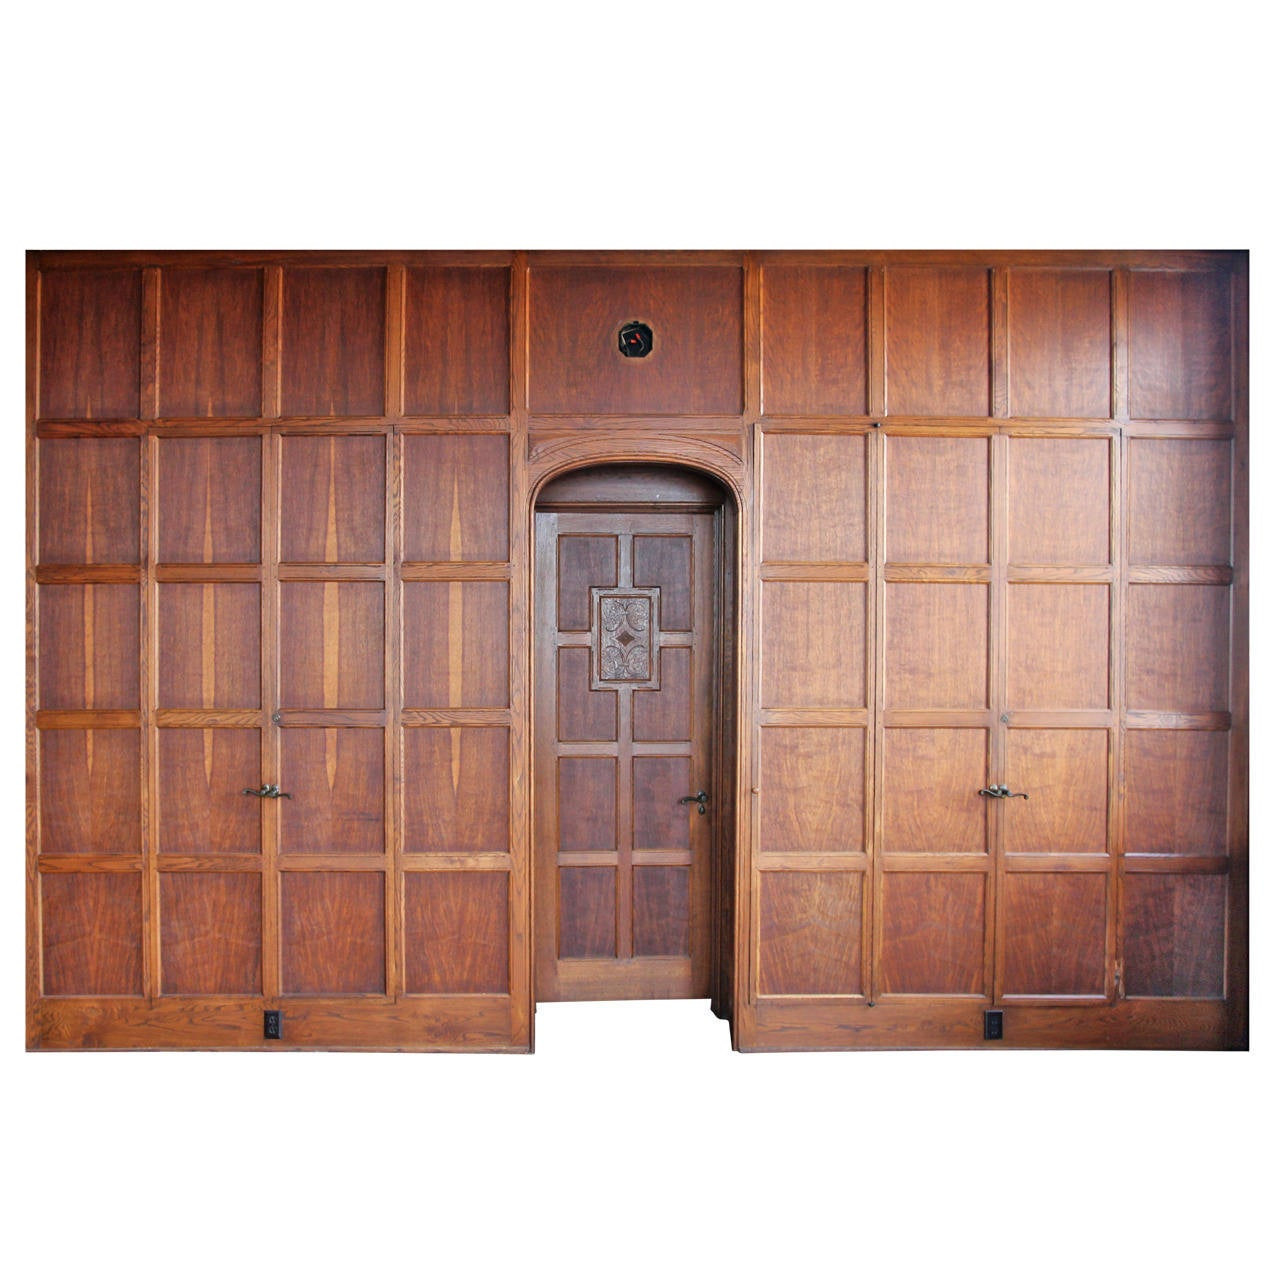 1905 tudor style english oak paneled room from two rivers wisconsin for sale at 1stdibs. Black Bedroom Furniture Sets. Home Design Ideas